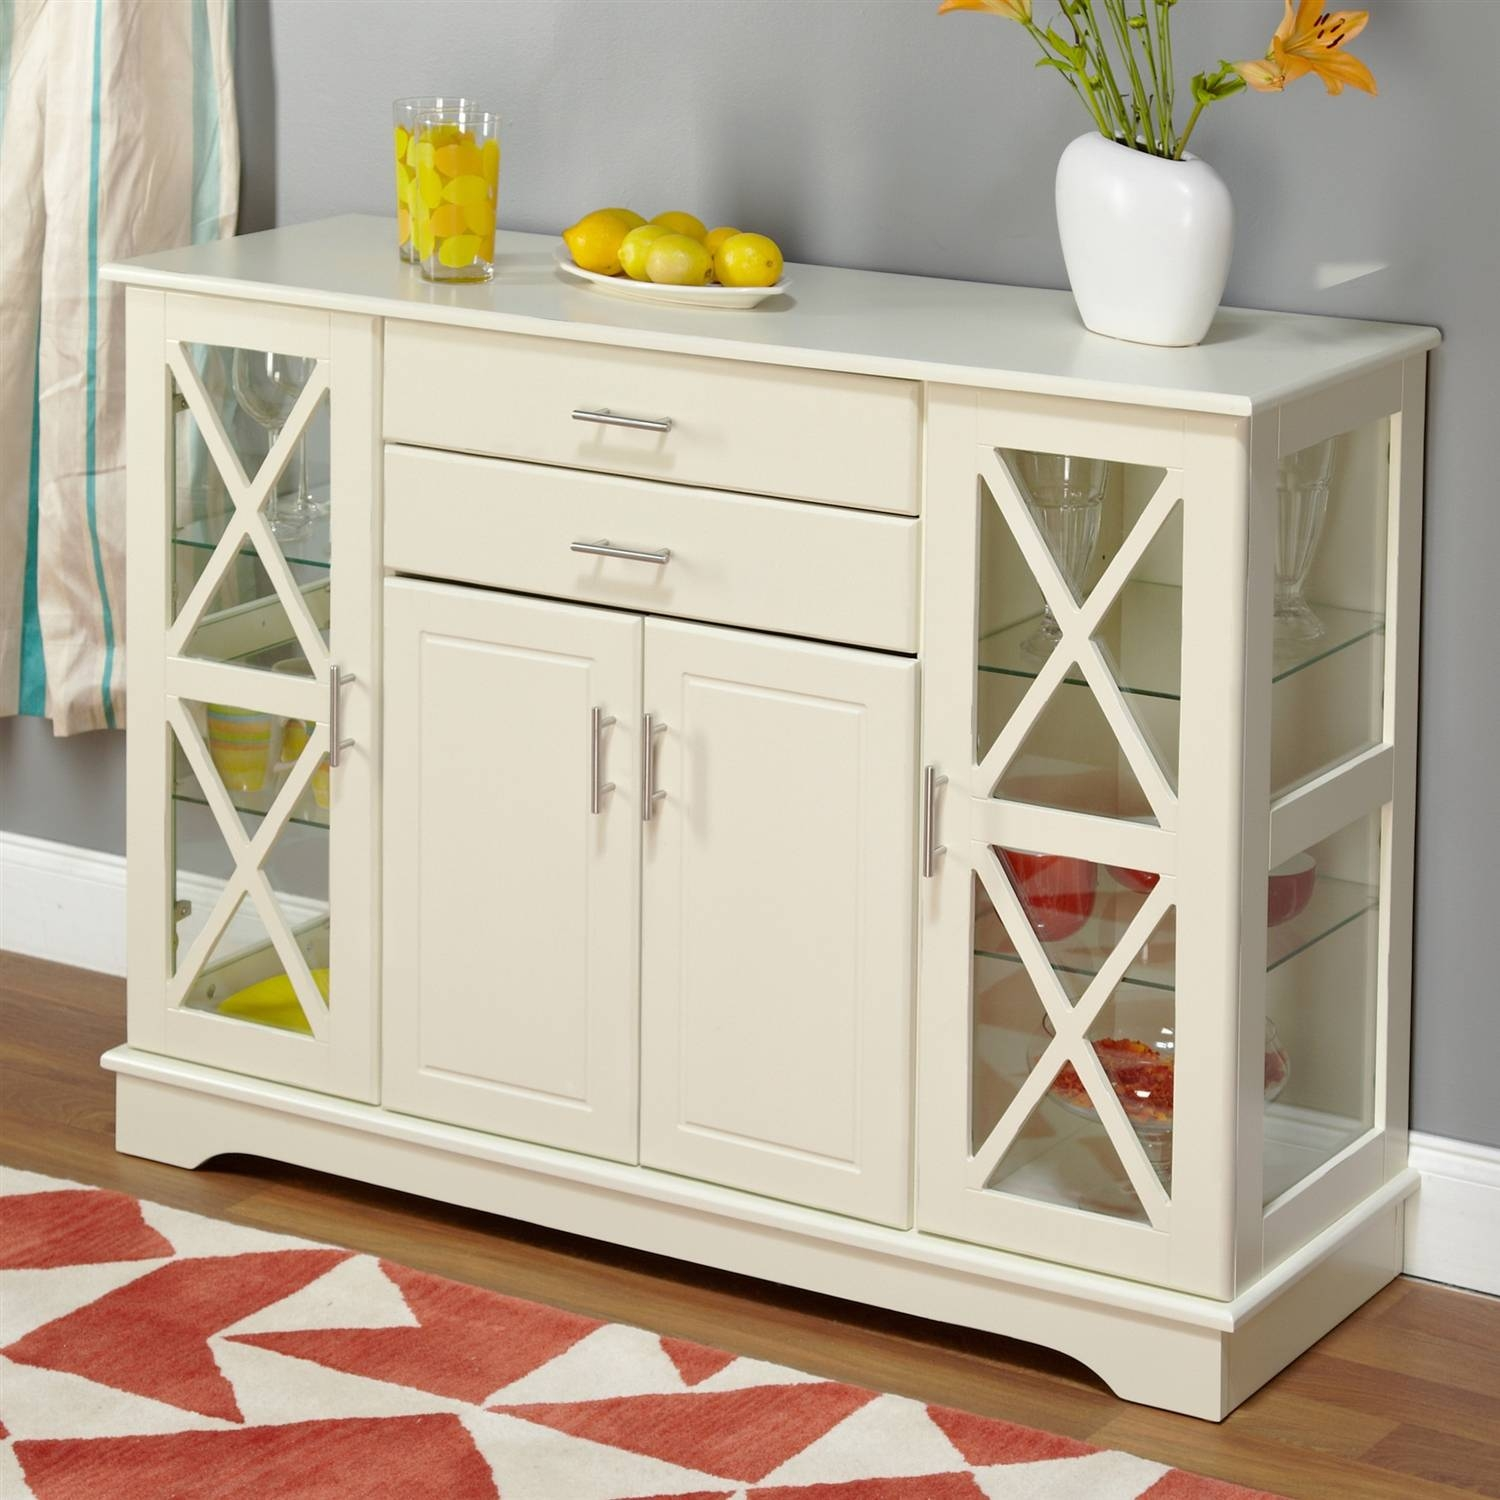 Sideboards & Buffets With Regard To Sideboards With Glass Doors And Drawers (View 11 of 15)